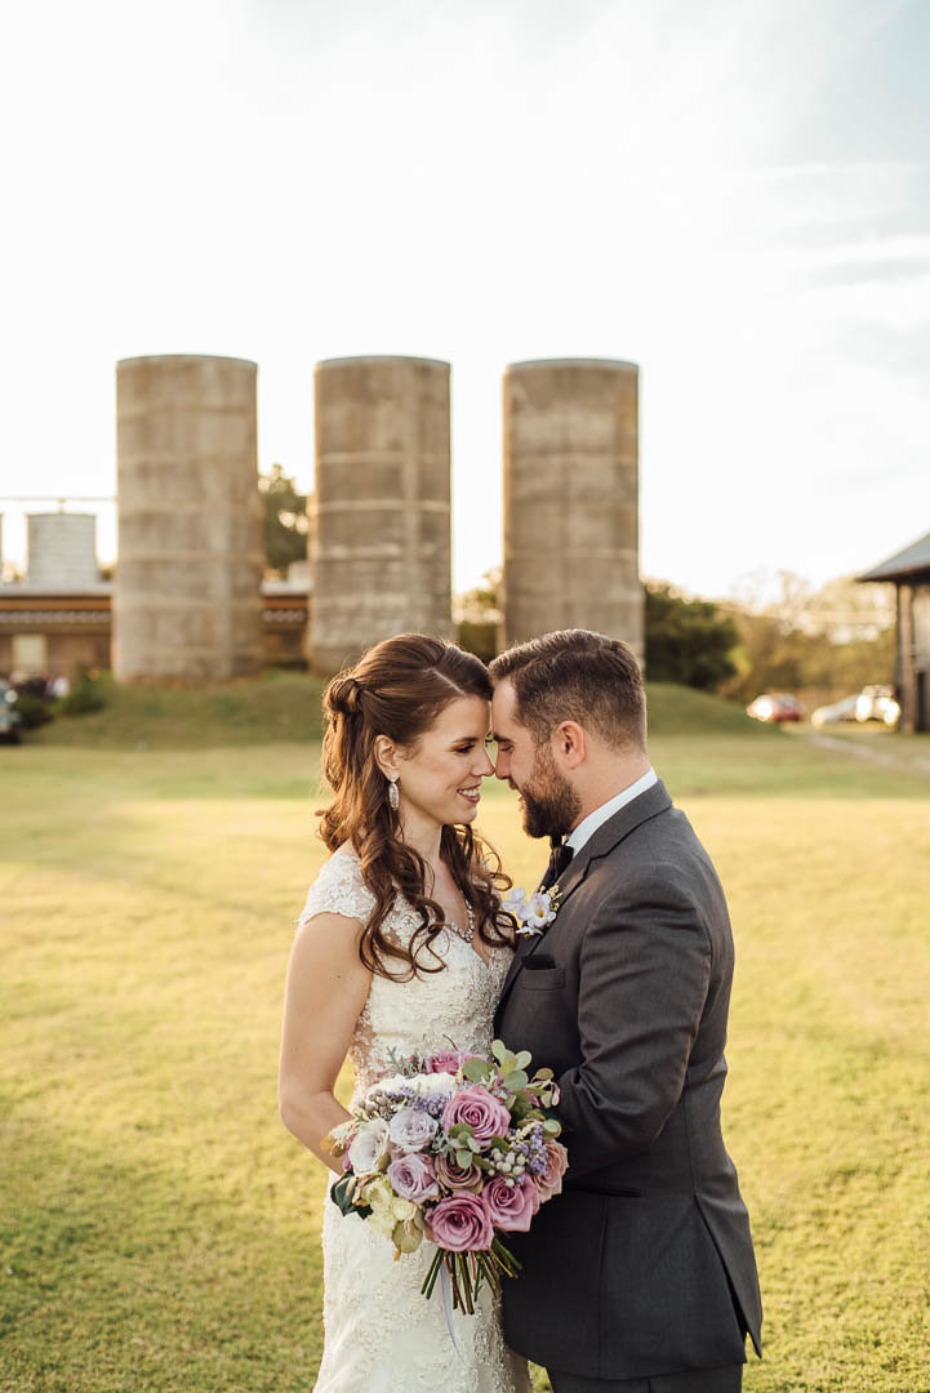 Green and purple fall outdoor wedding amongst the silos